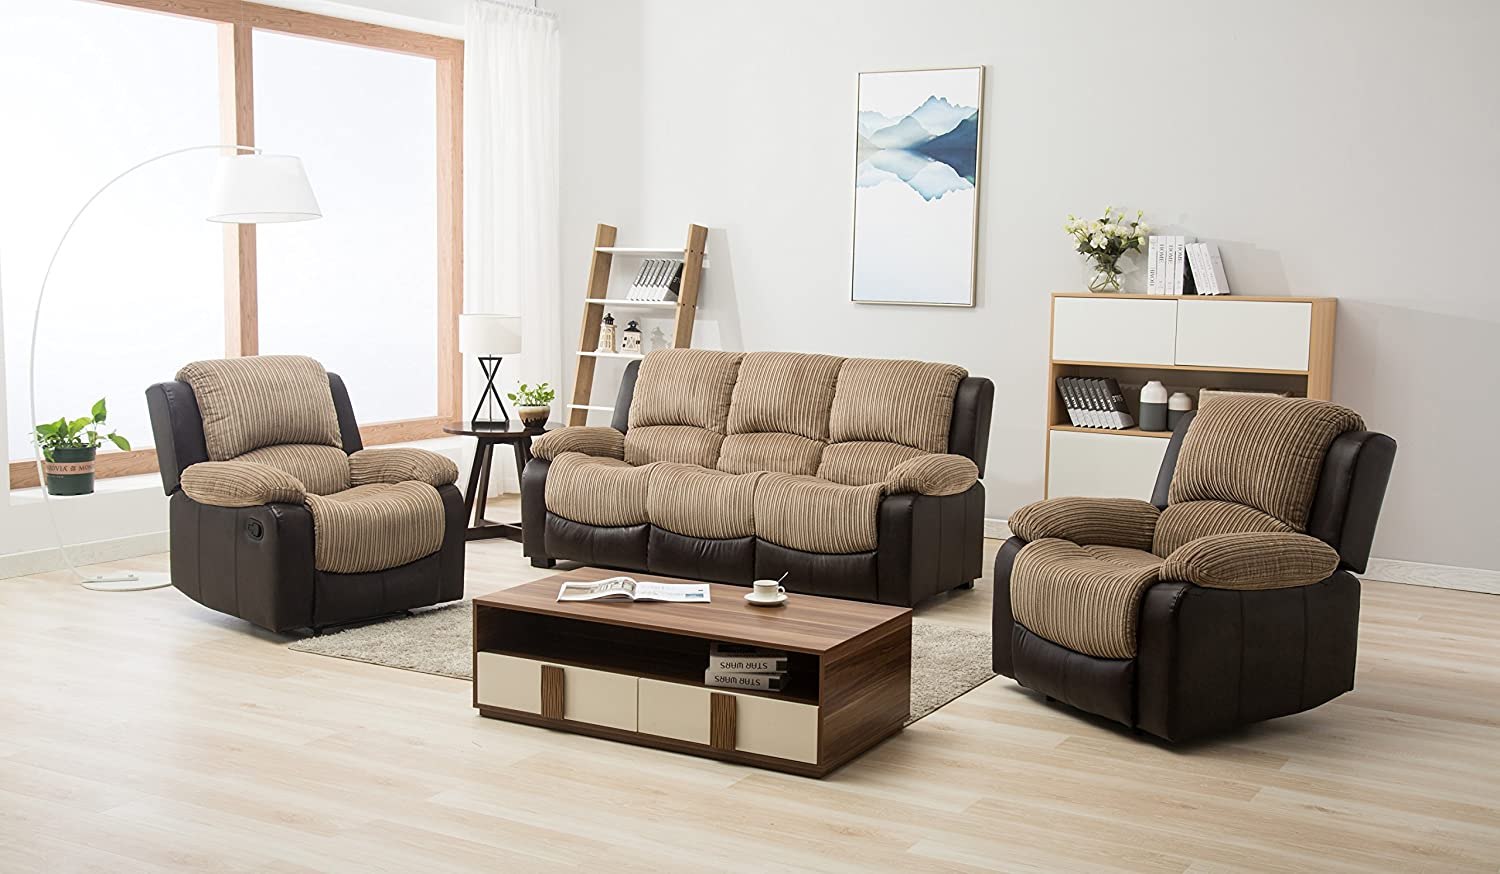 Exceptionnel Details About New Marsha Fabric Reclining Sofa Set Brown And Beige Recline  3 + 1 + 1 Armchairs